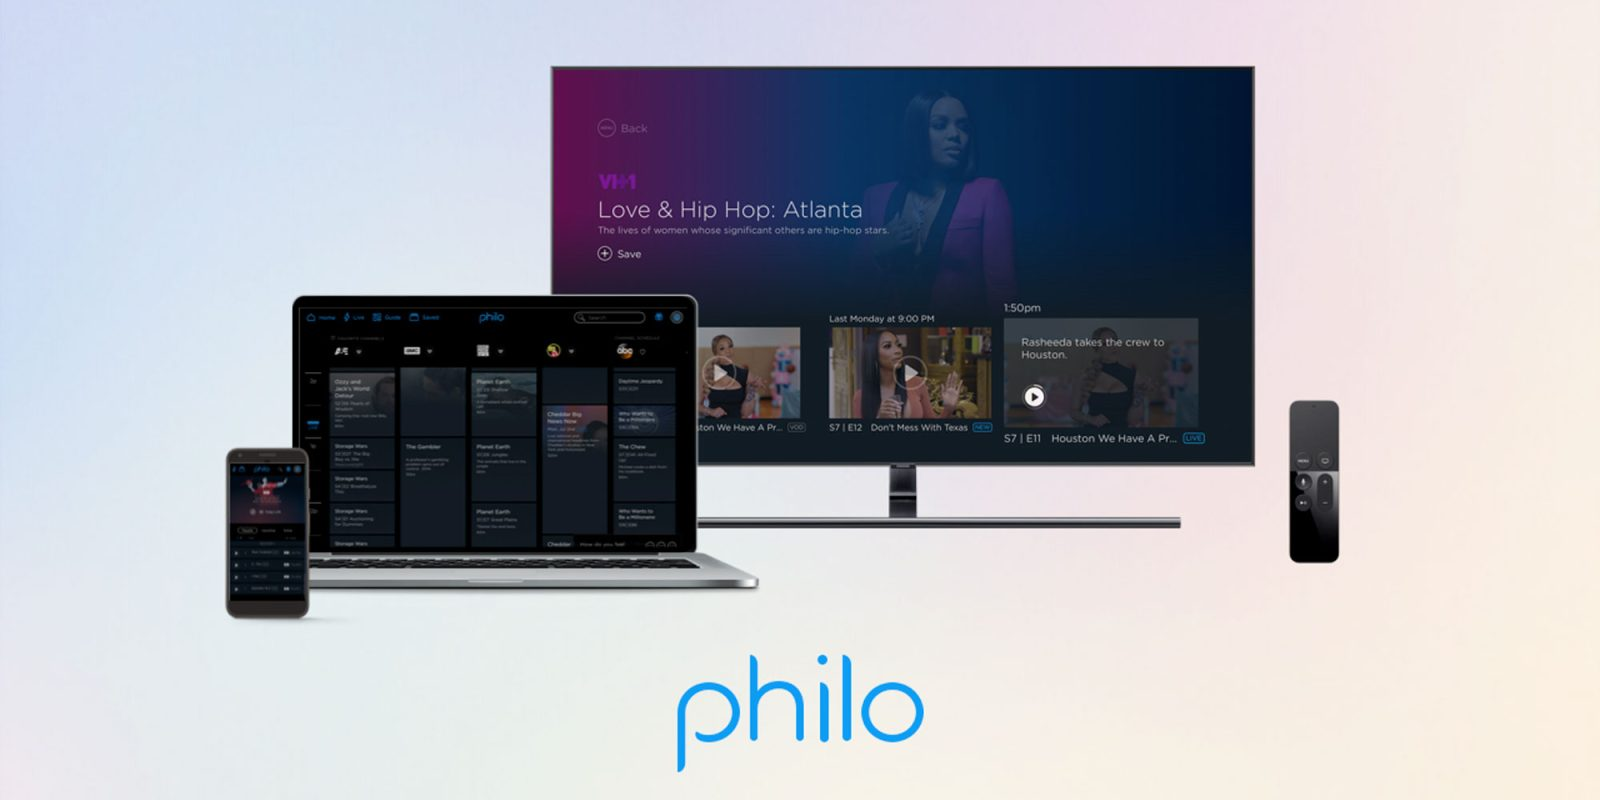 Start streaming w/ 1-month of Philo's service for FREE if you're a new member (Up to $20 value)